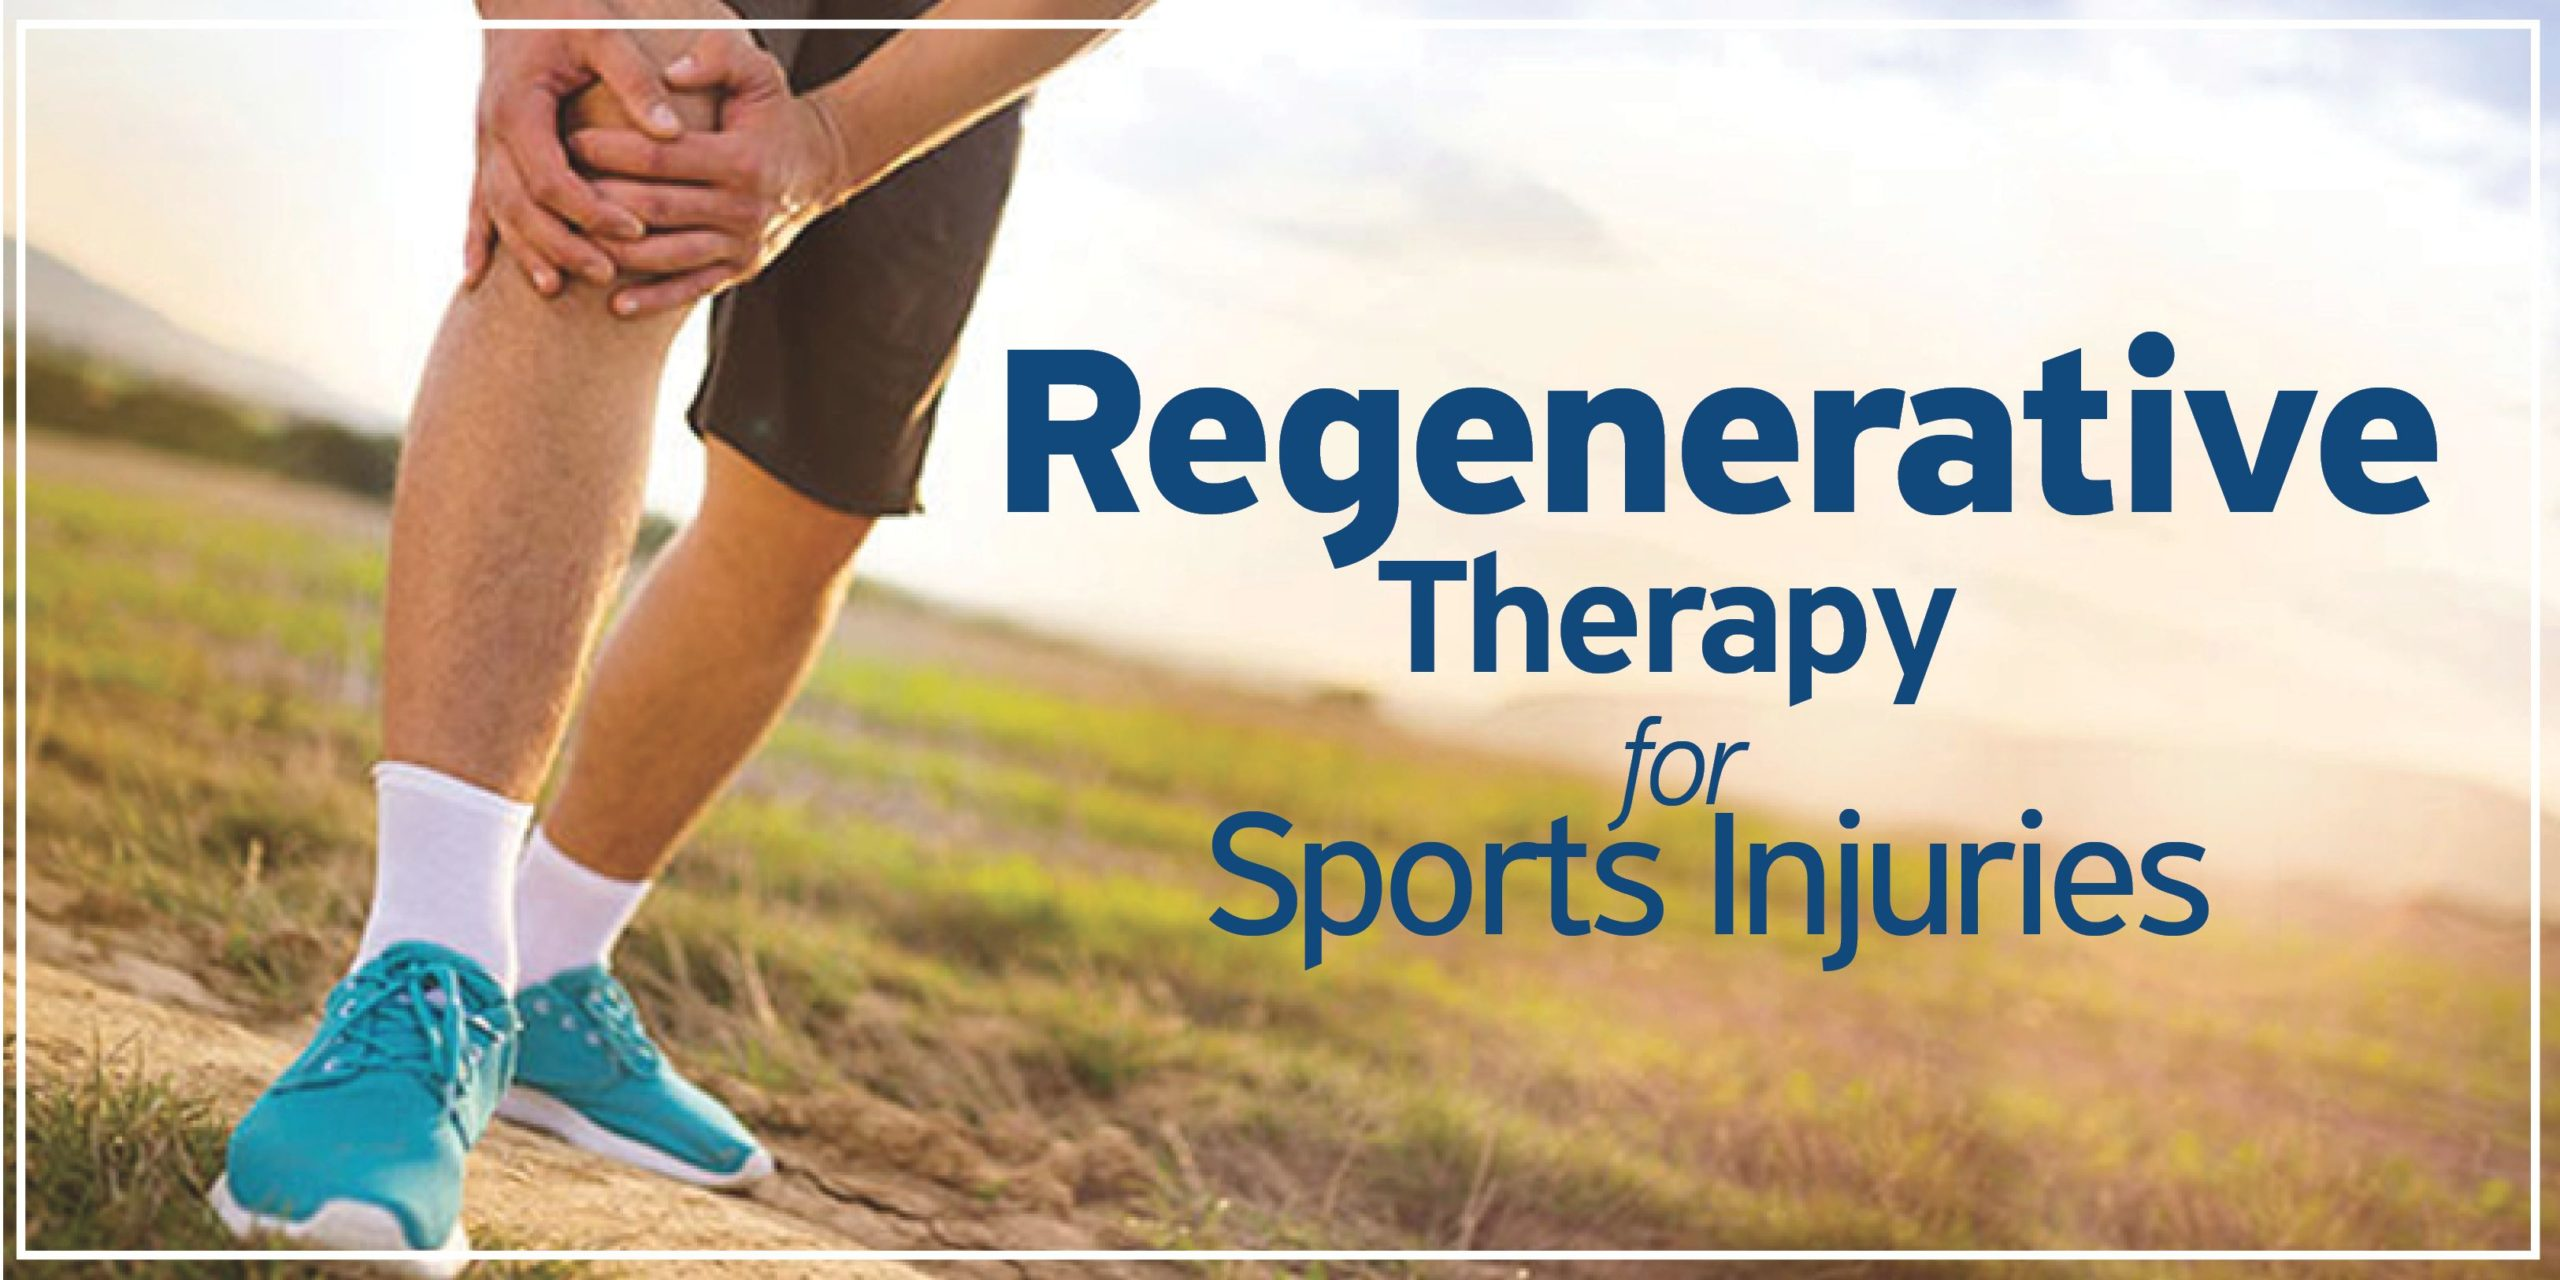 Sports Injuries Treatment at Medica Stem Cells